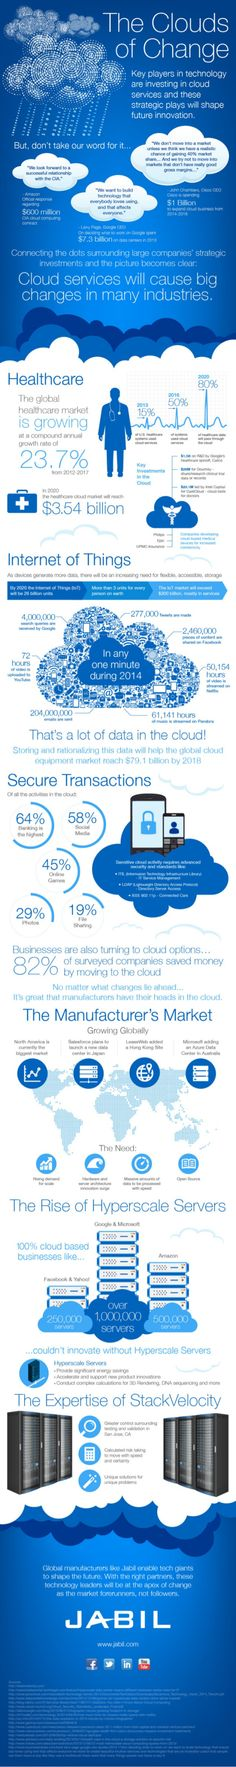 This infographic looks at how key players in technology are investing in cloud services and how these strategic plays will shape future innovation in cloud computing and cloud-based industries like: healthcare, the Internet of Things, security and more. Cloud Computing Technology, Cloud Computing Services, Smart Home Technology, Digital Technology, Wearable Technology, Machine Learning Deep Learning, Computer Repair, Data Visualization, Computer Science